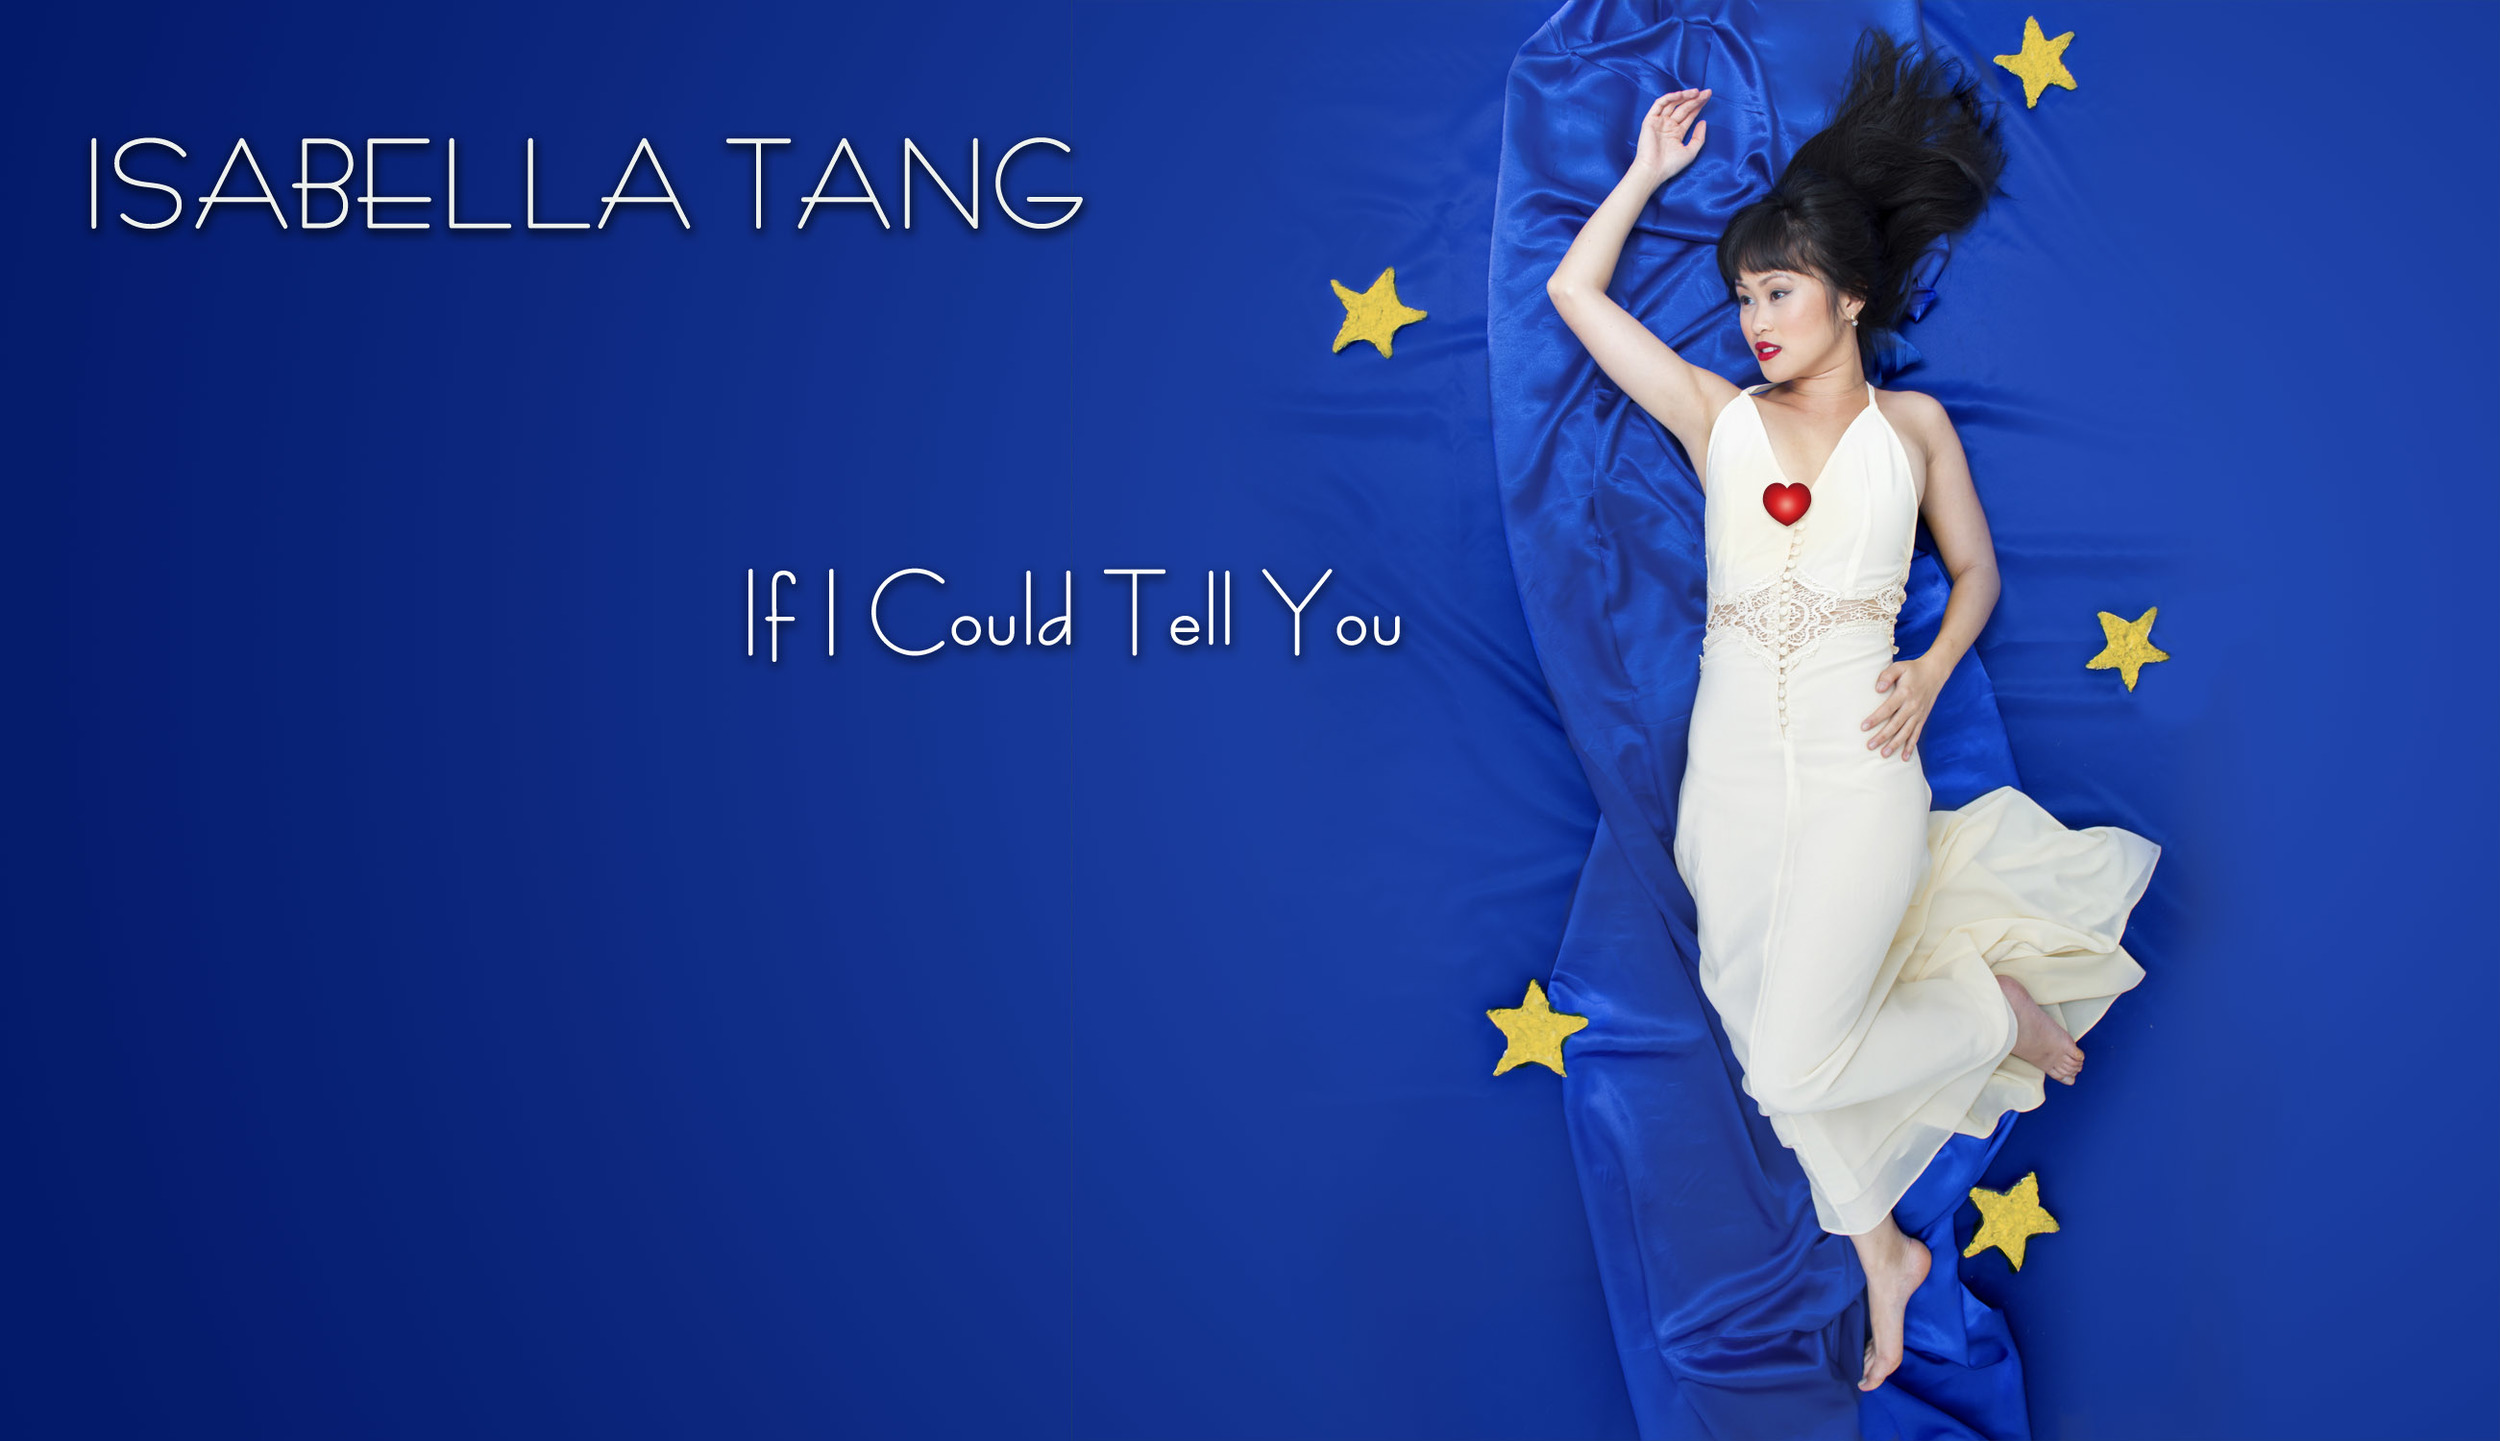 Isabella Tang_If I Could Tell You_Facebook Cover.jpg